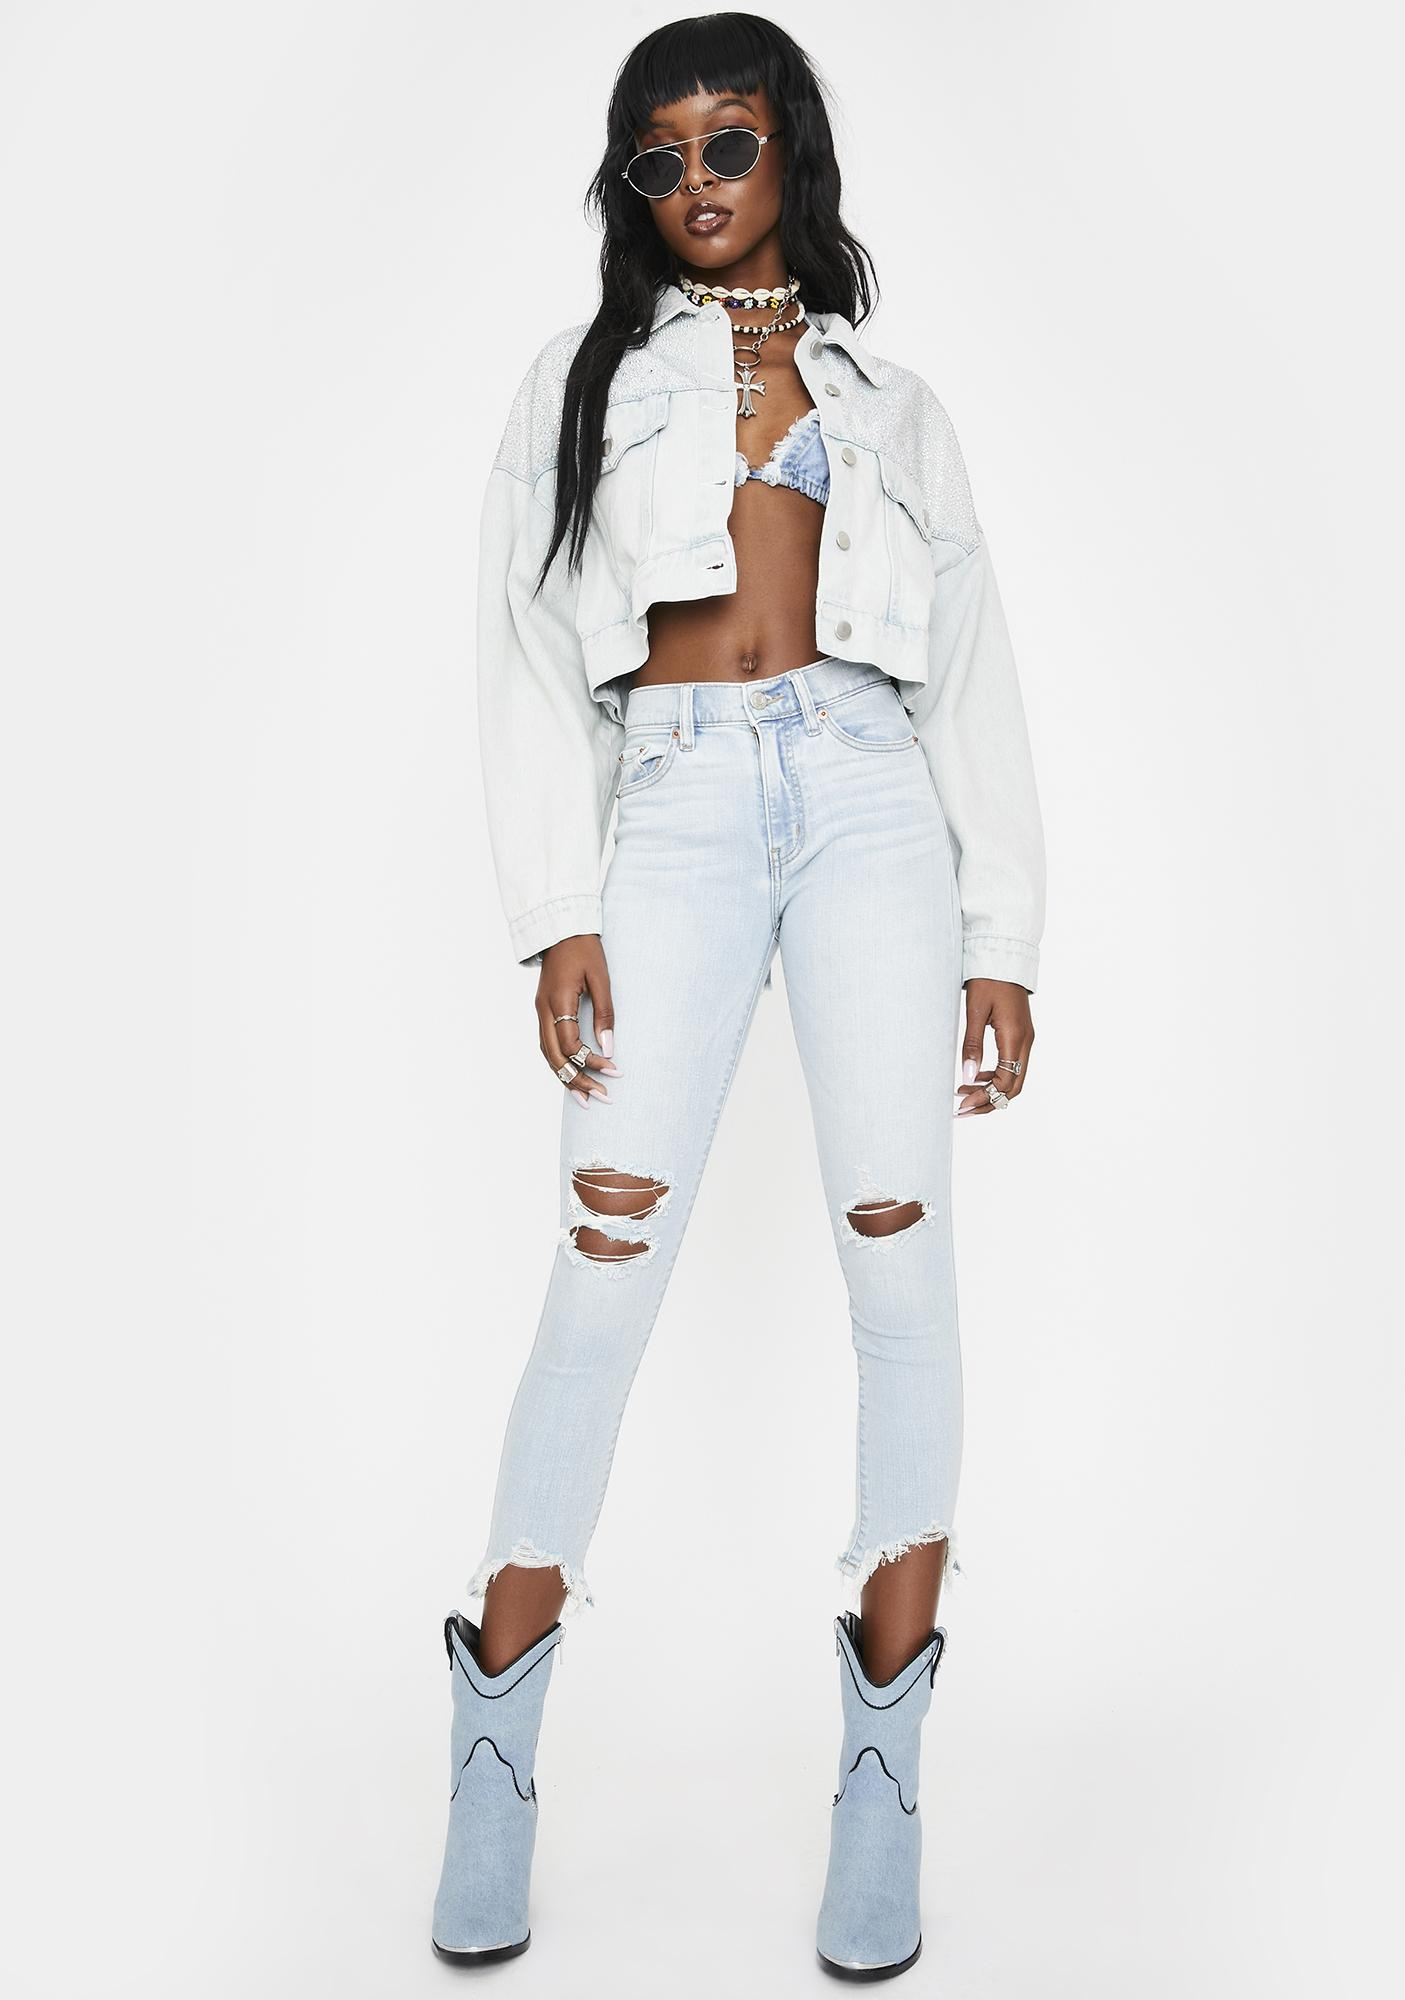 AZALEA WANG Miloh Rhinestone Cropped Denim Jacket